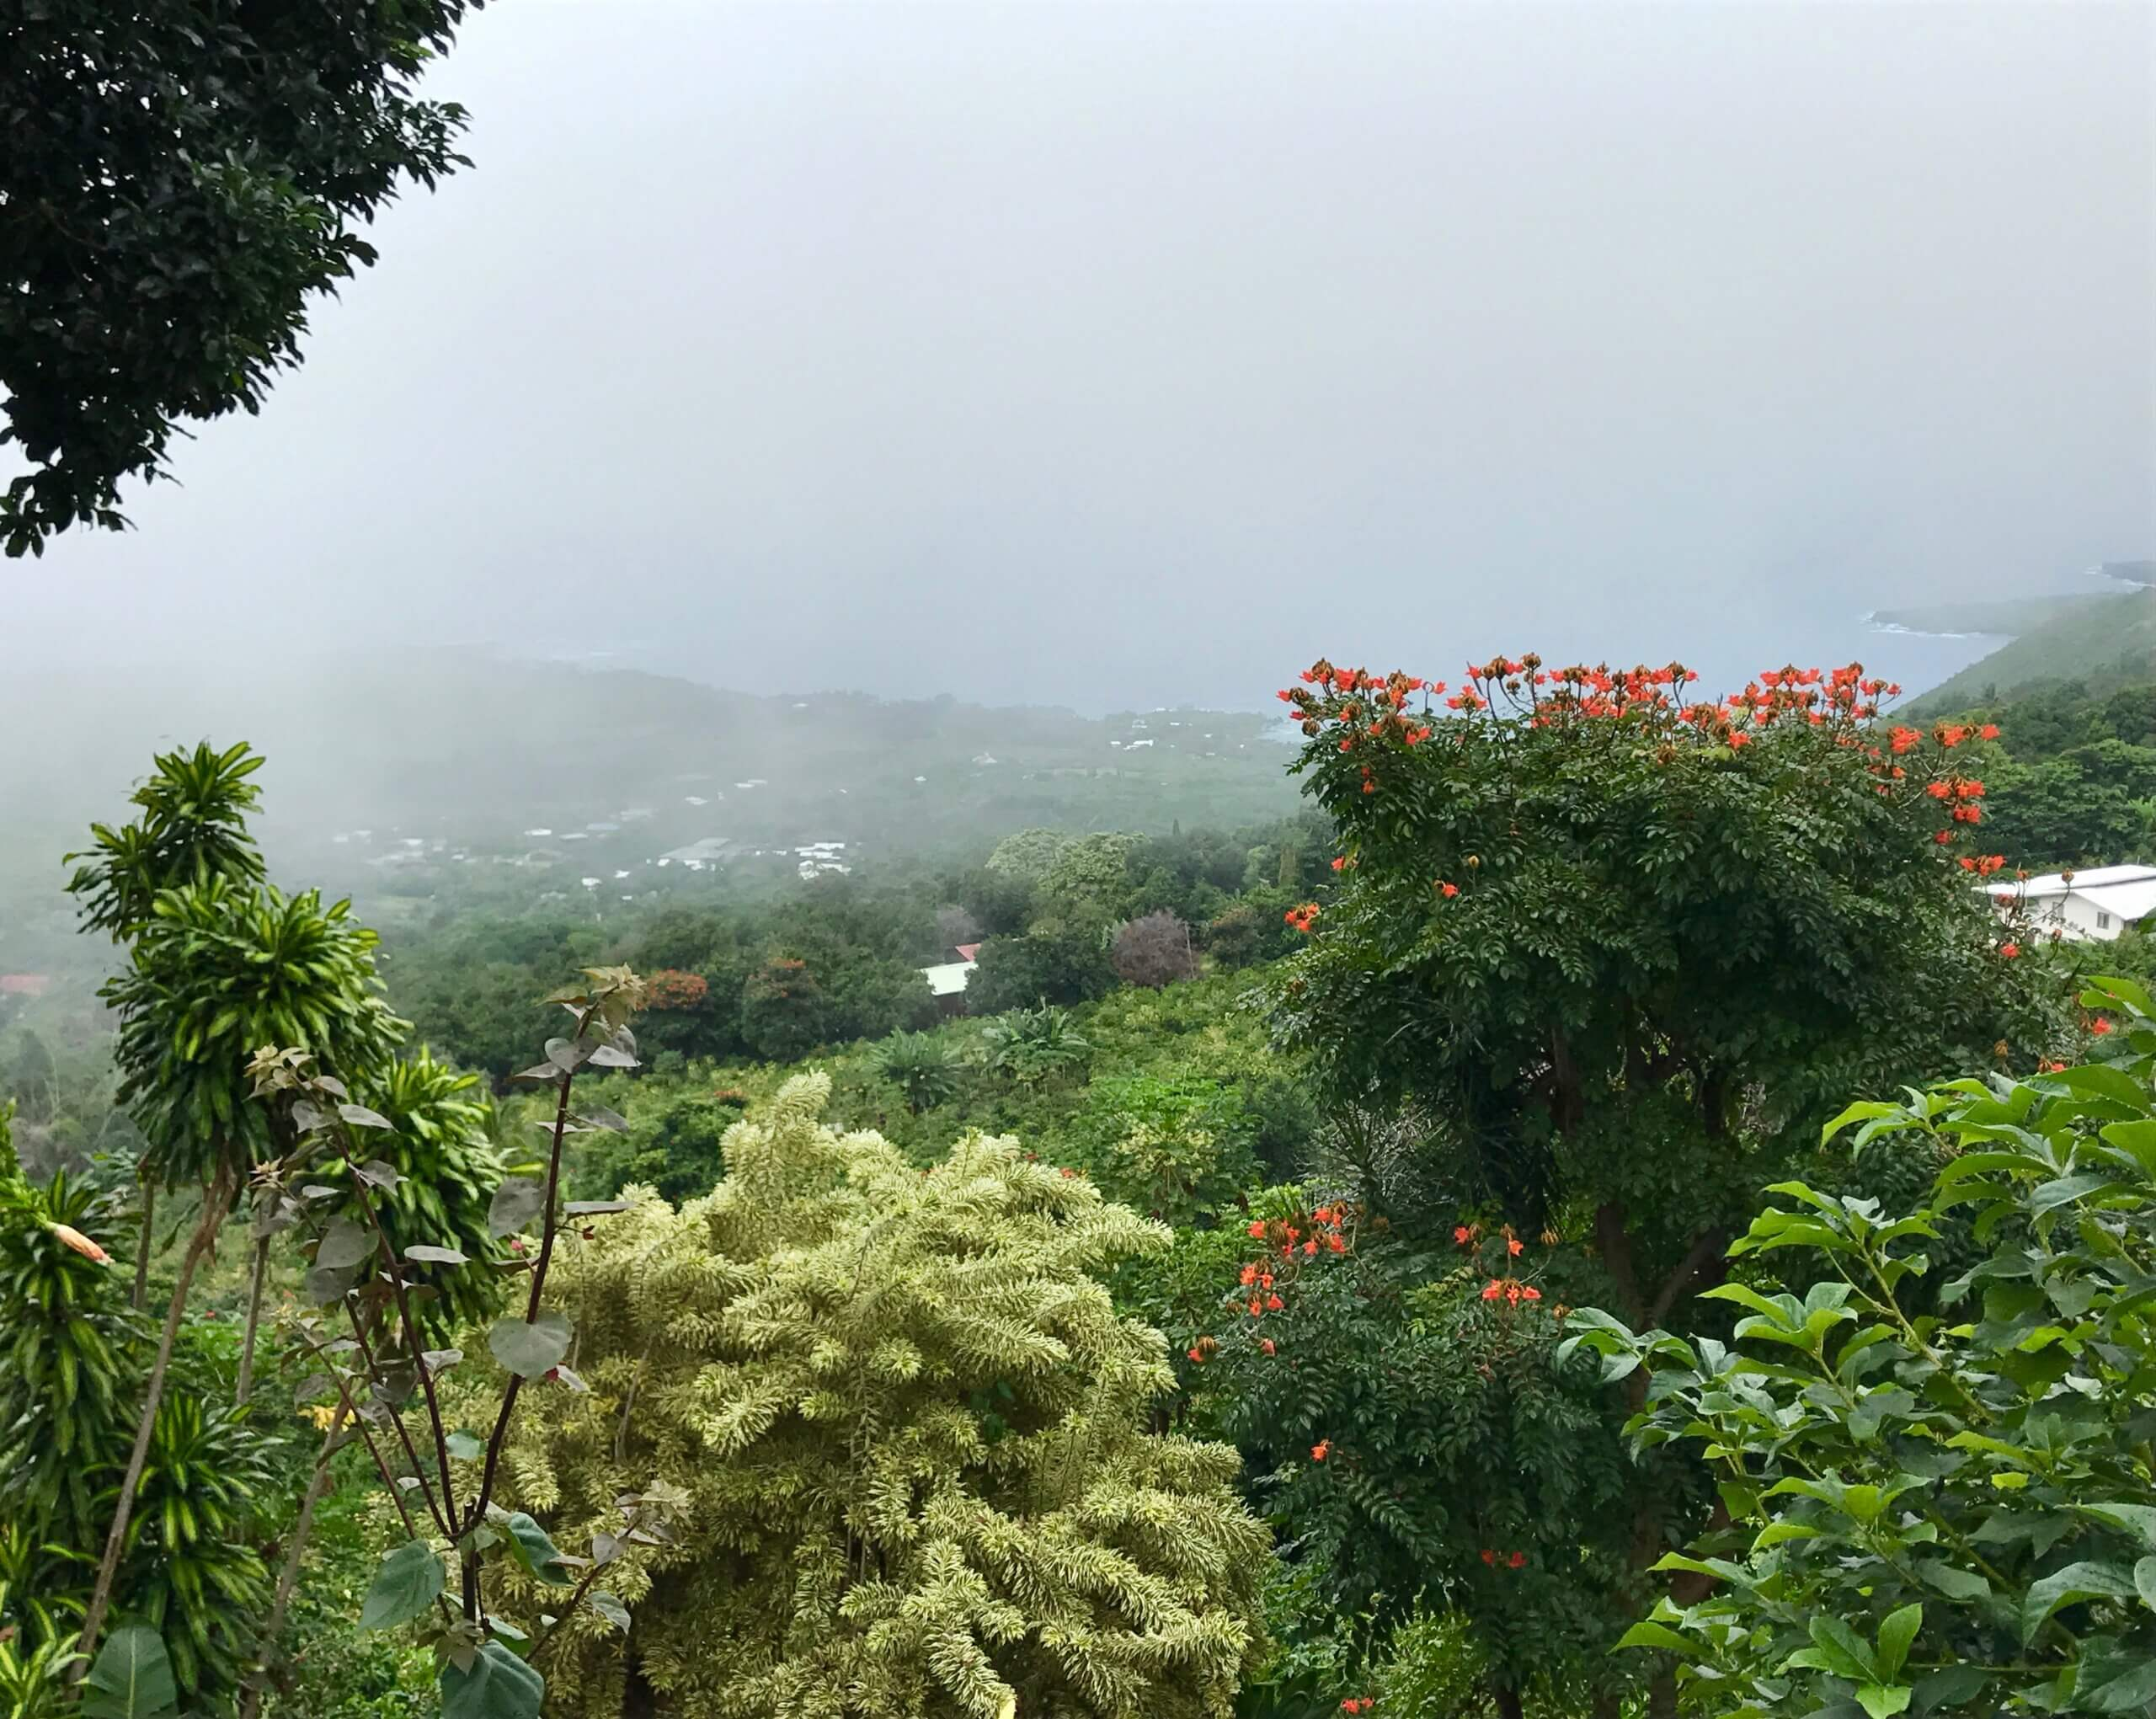 Kona views